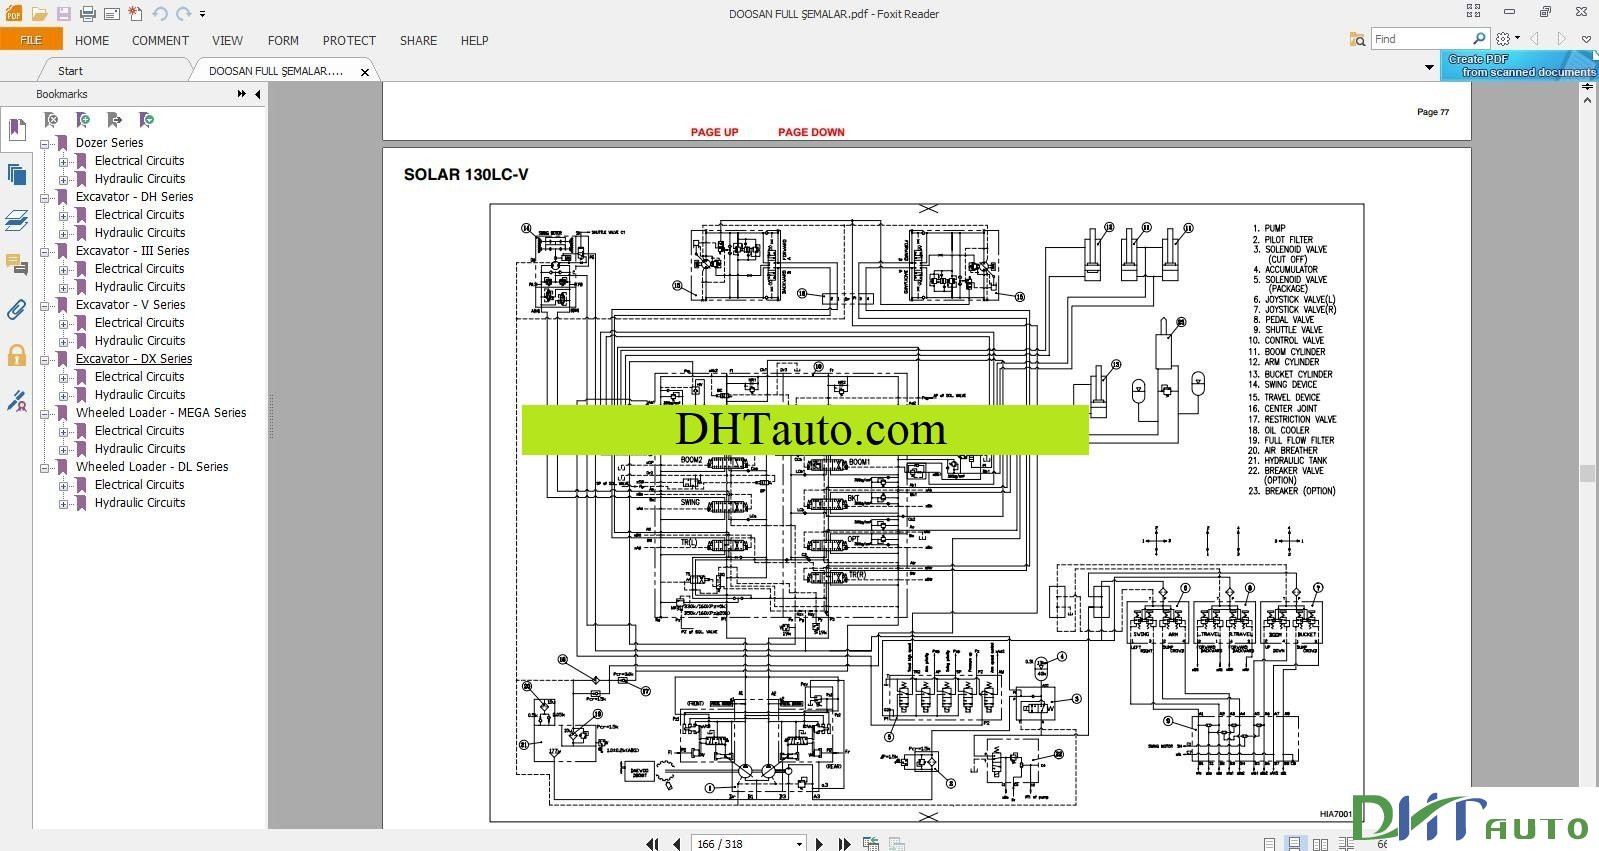 doosan forklift wiring diagram wiring diagram for you forklift wiring diagram propane doosan forklift wiring diagram [ 1599 x 851 Pixel ]